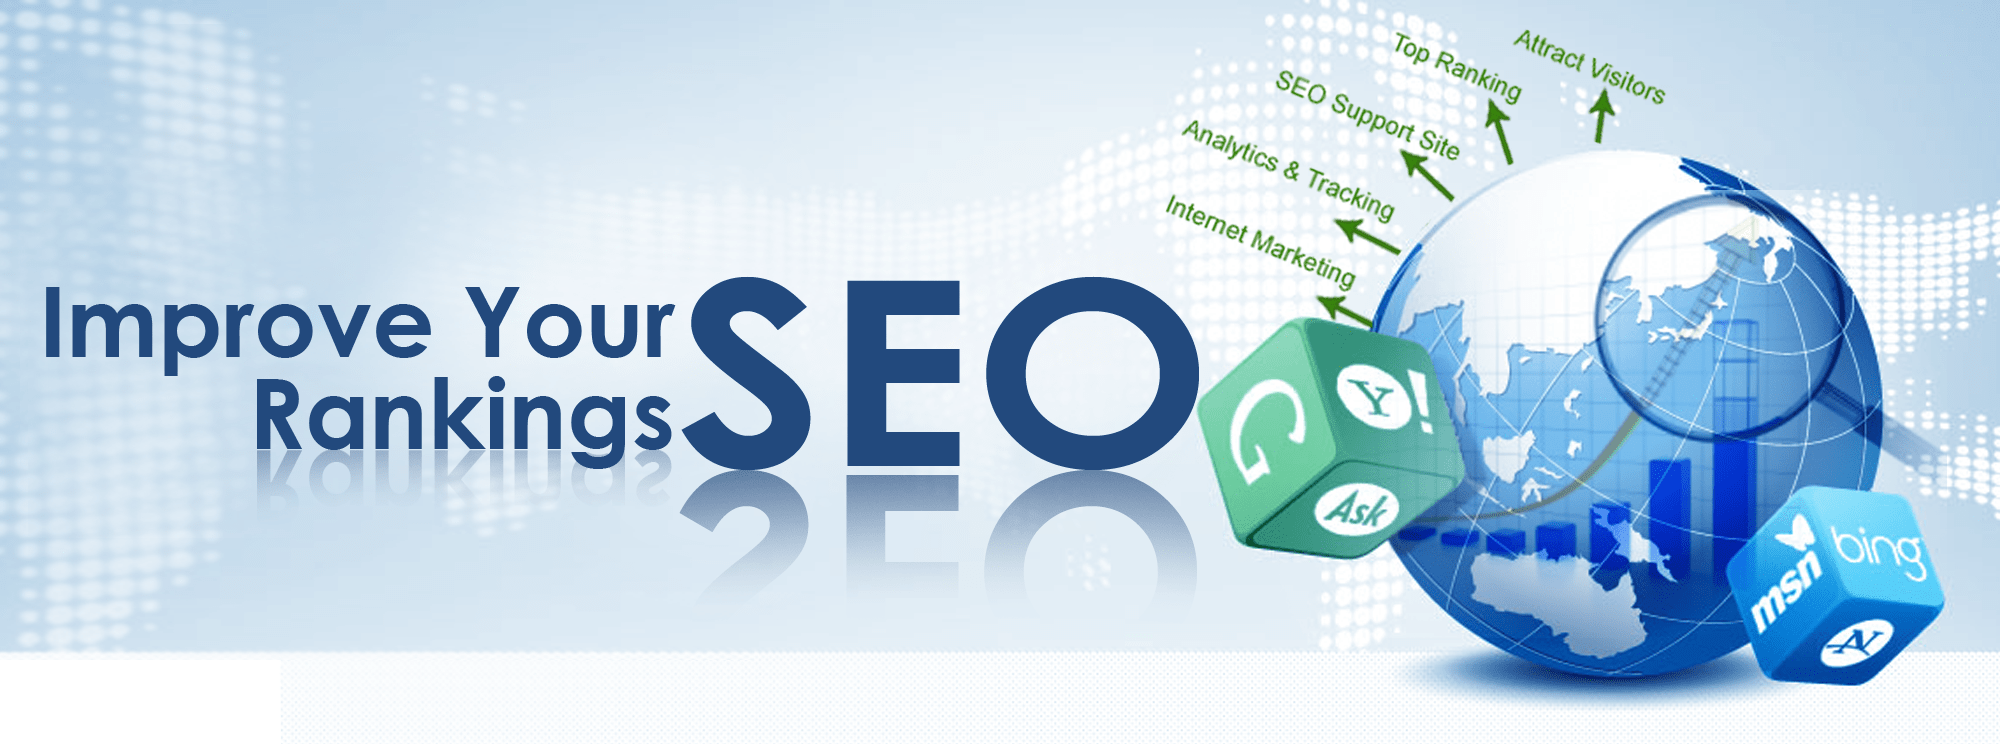 best-seo-services image